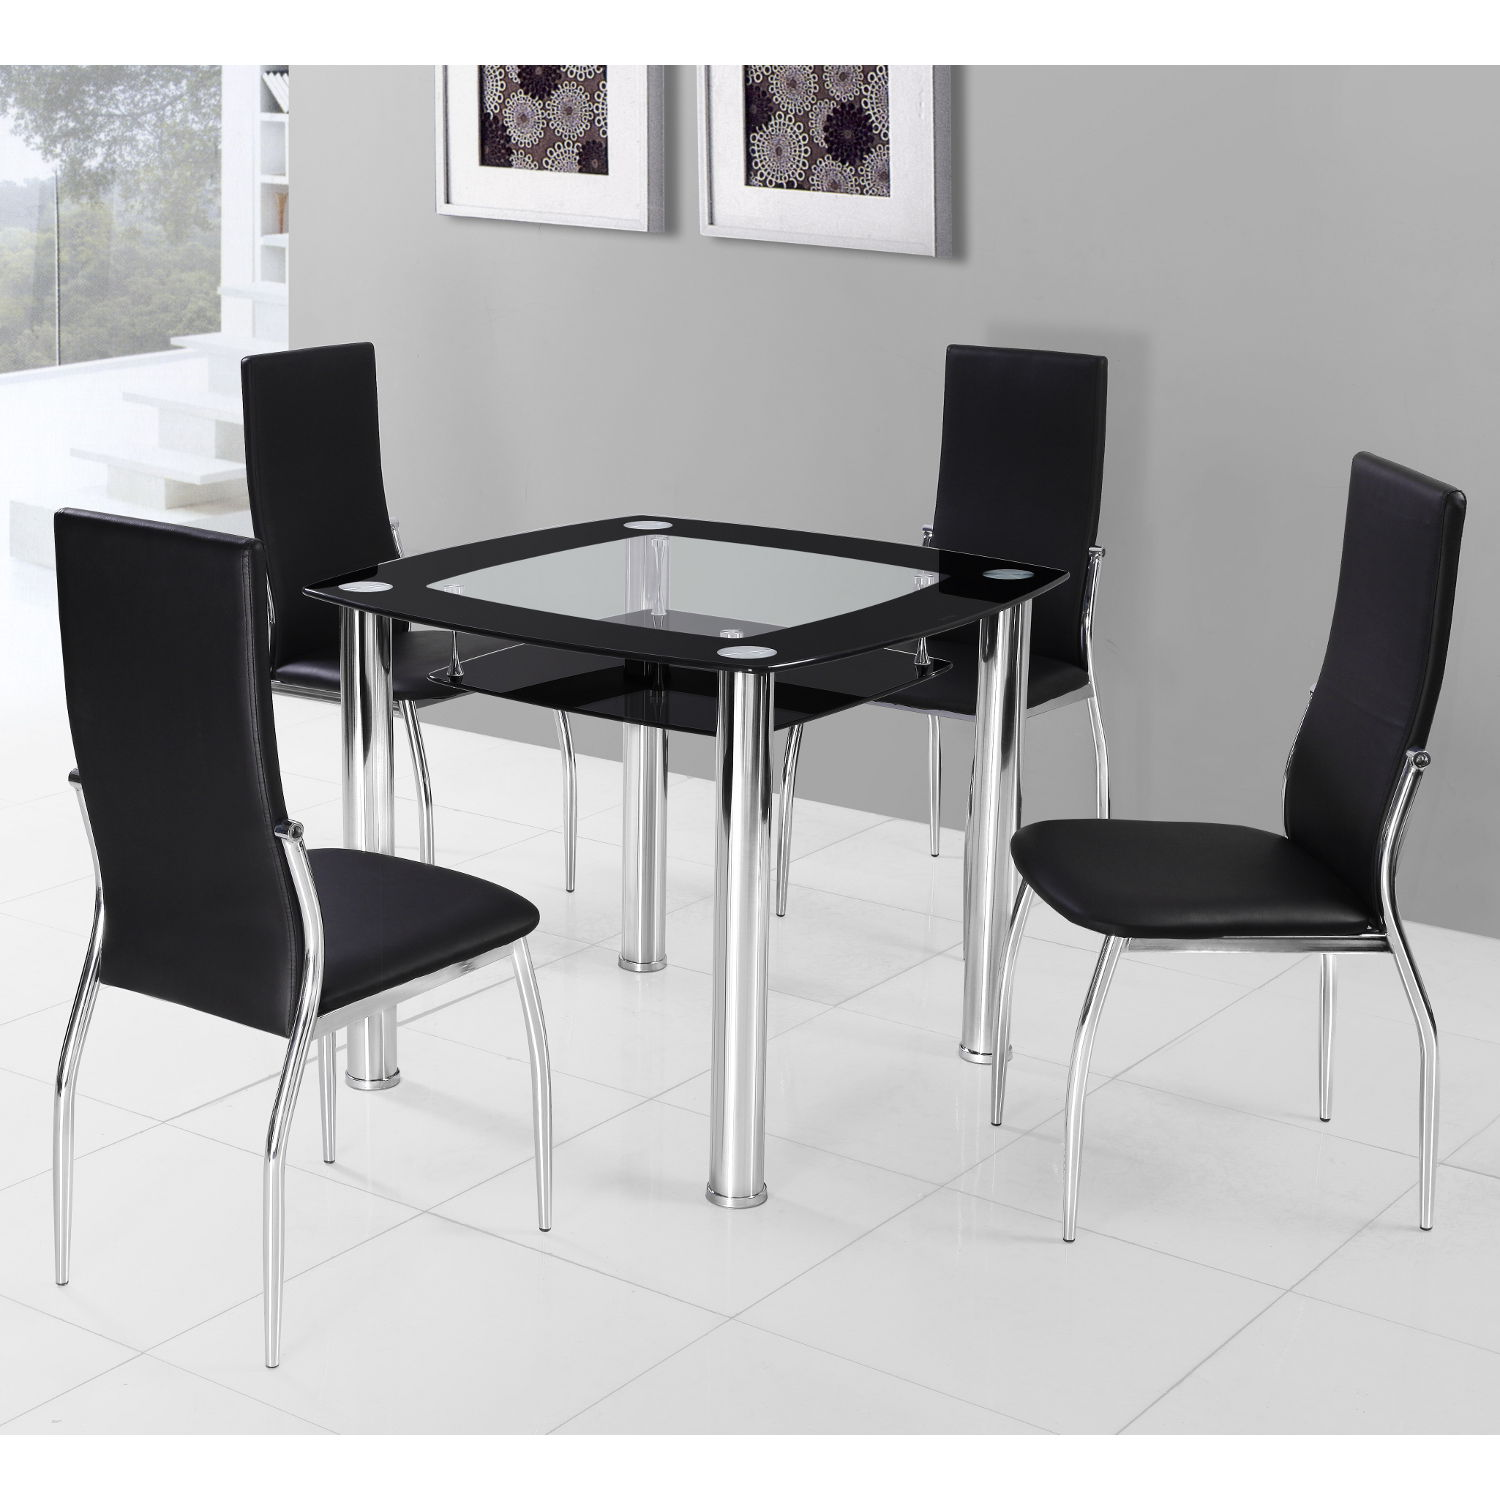 4 chair dining table designs black and white chairs living room square for homesfeed